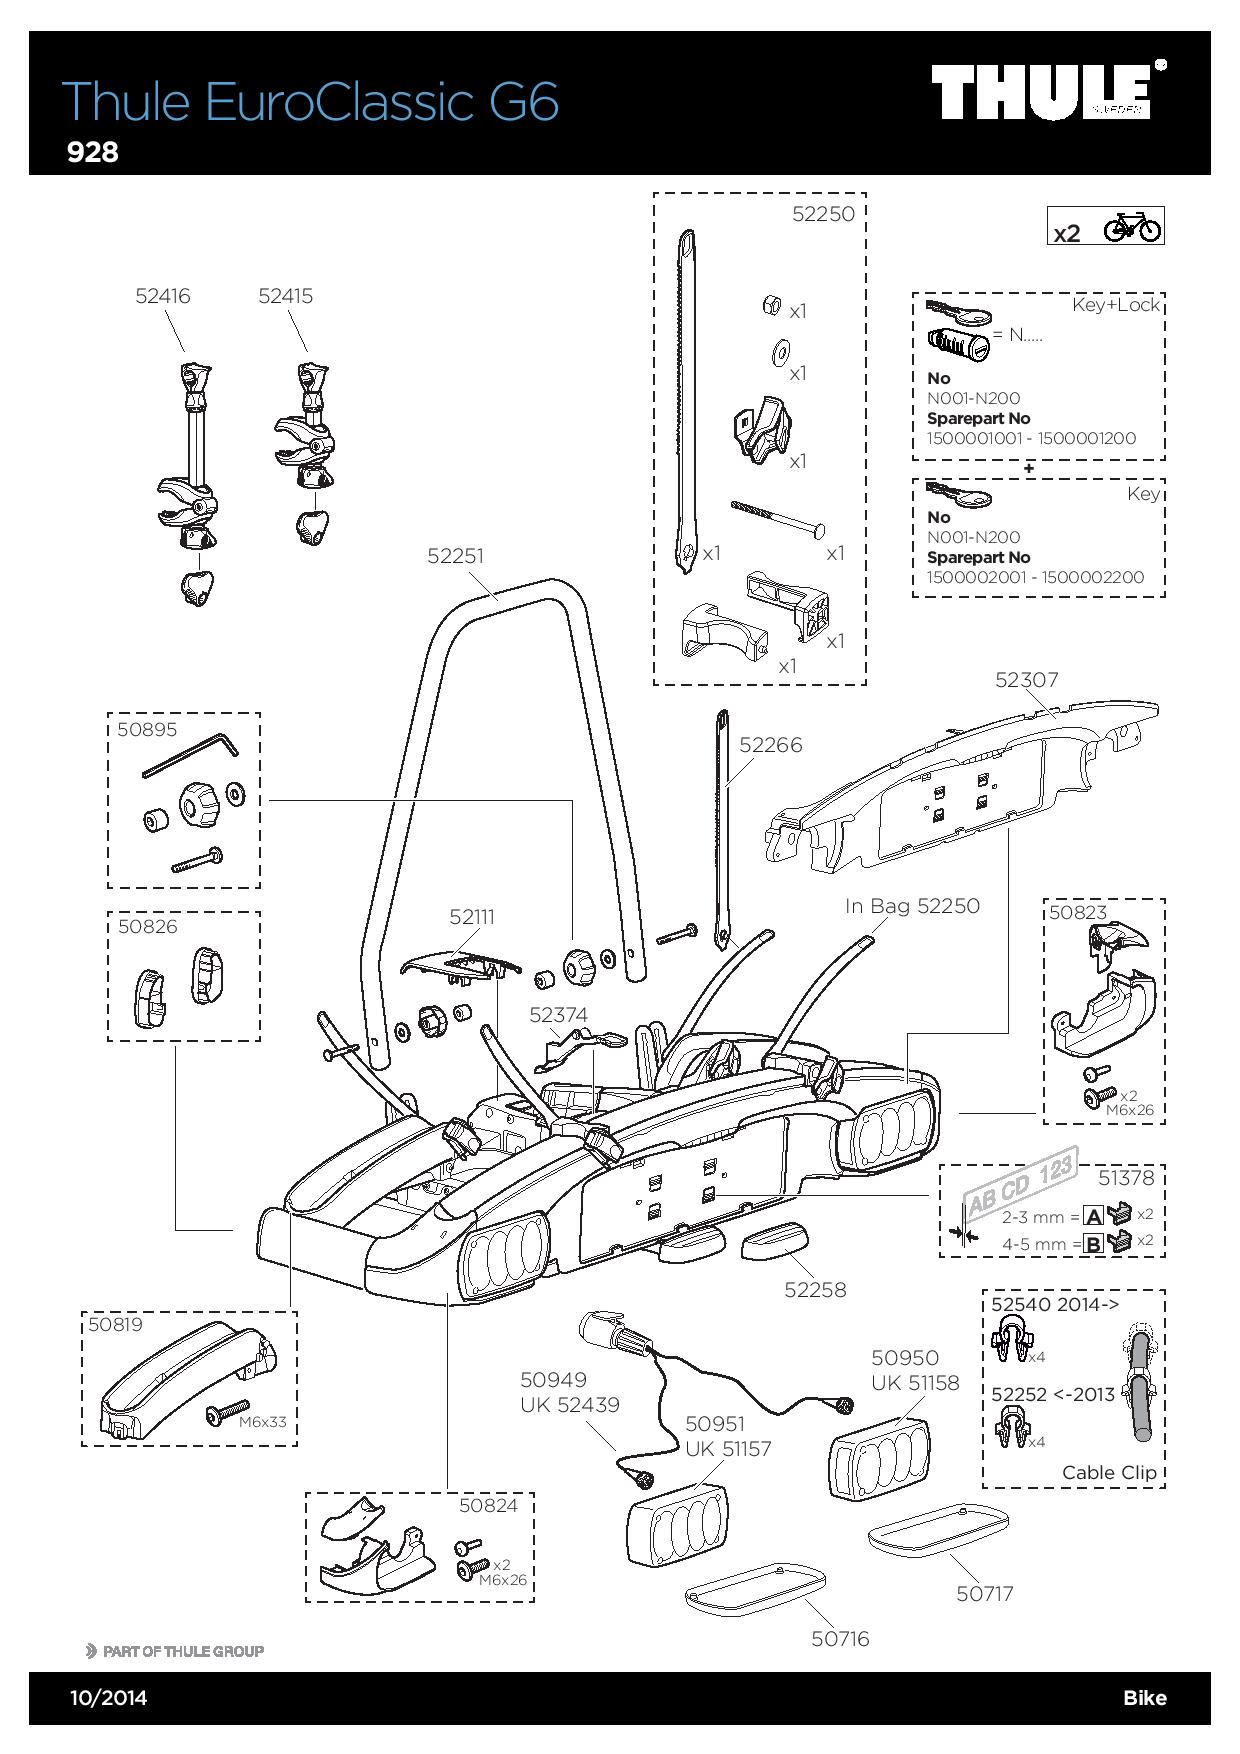 honda 929 auto electrical wiring diagramthule euroclassic g6 meovia